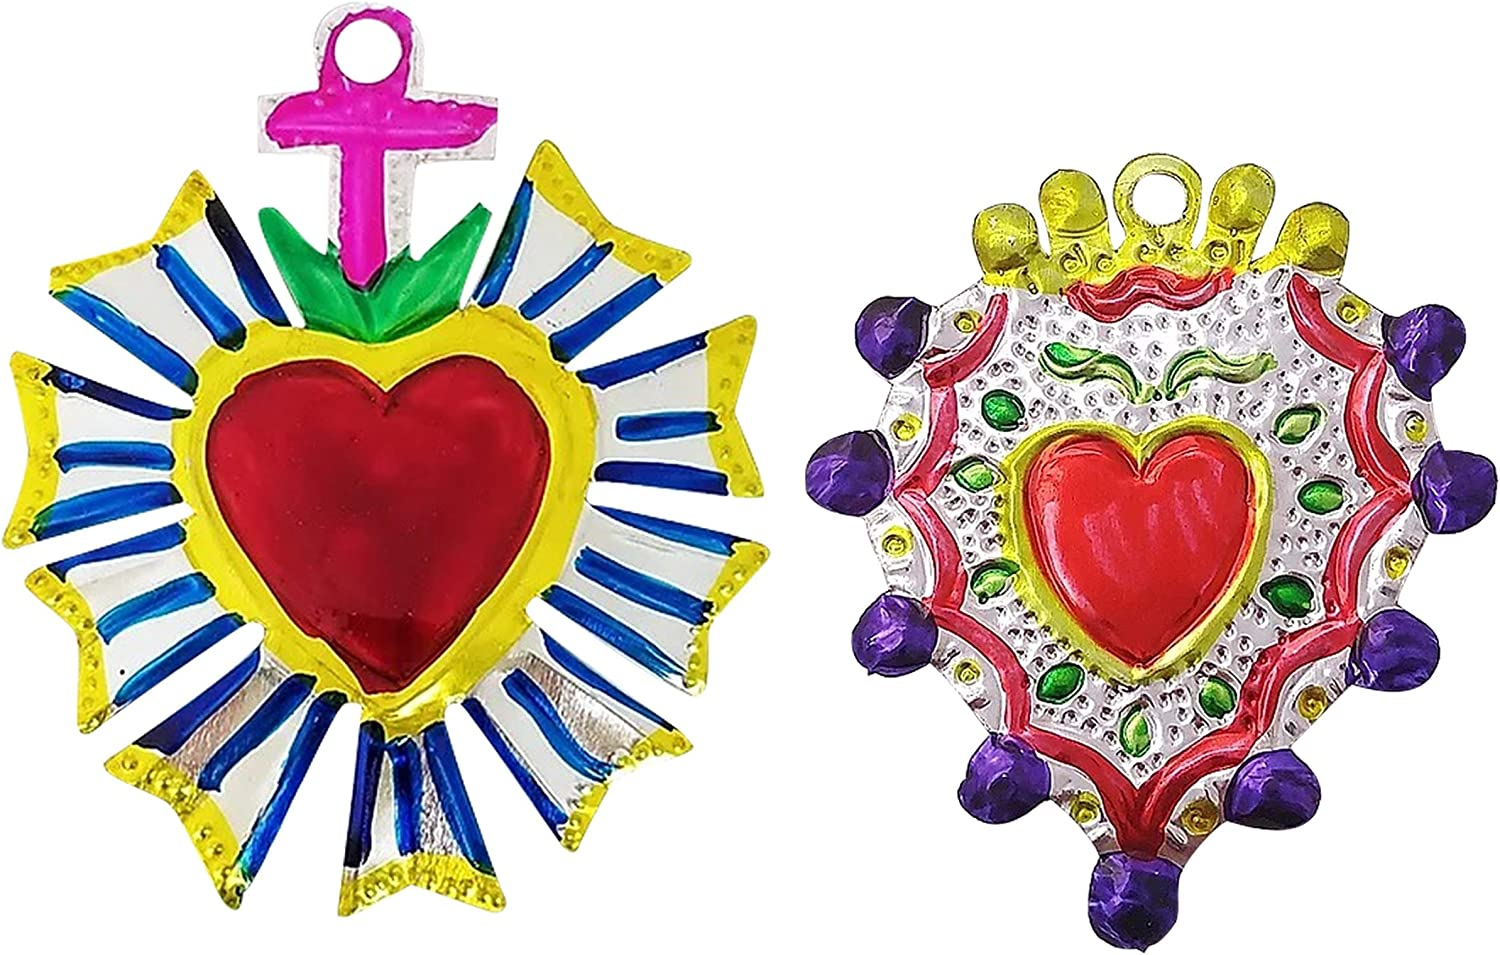 2 Ex Voto Sacred Heart | Hand Crafted Mexican Tin Art in Colorful Heart with Rays and Heart with Purple Border Design | Milagros Heart Metal Charms Set for Wall Decor (Has Hole to Hang)